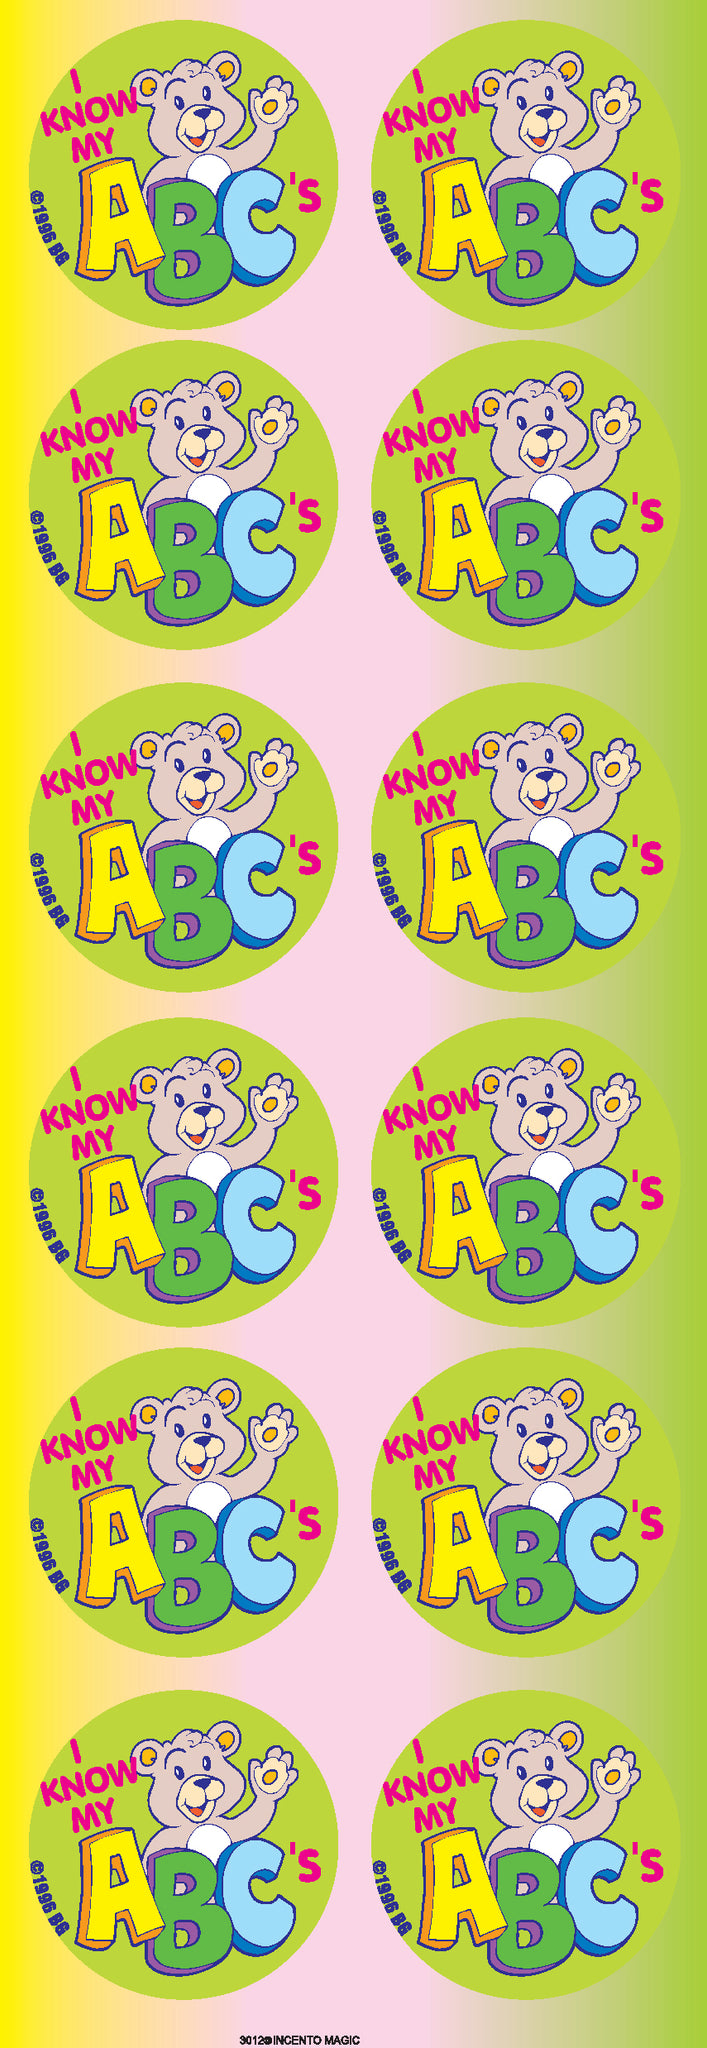 #3012 I Know my ABC's Jumbo Dot Stickers